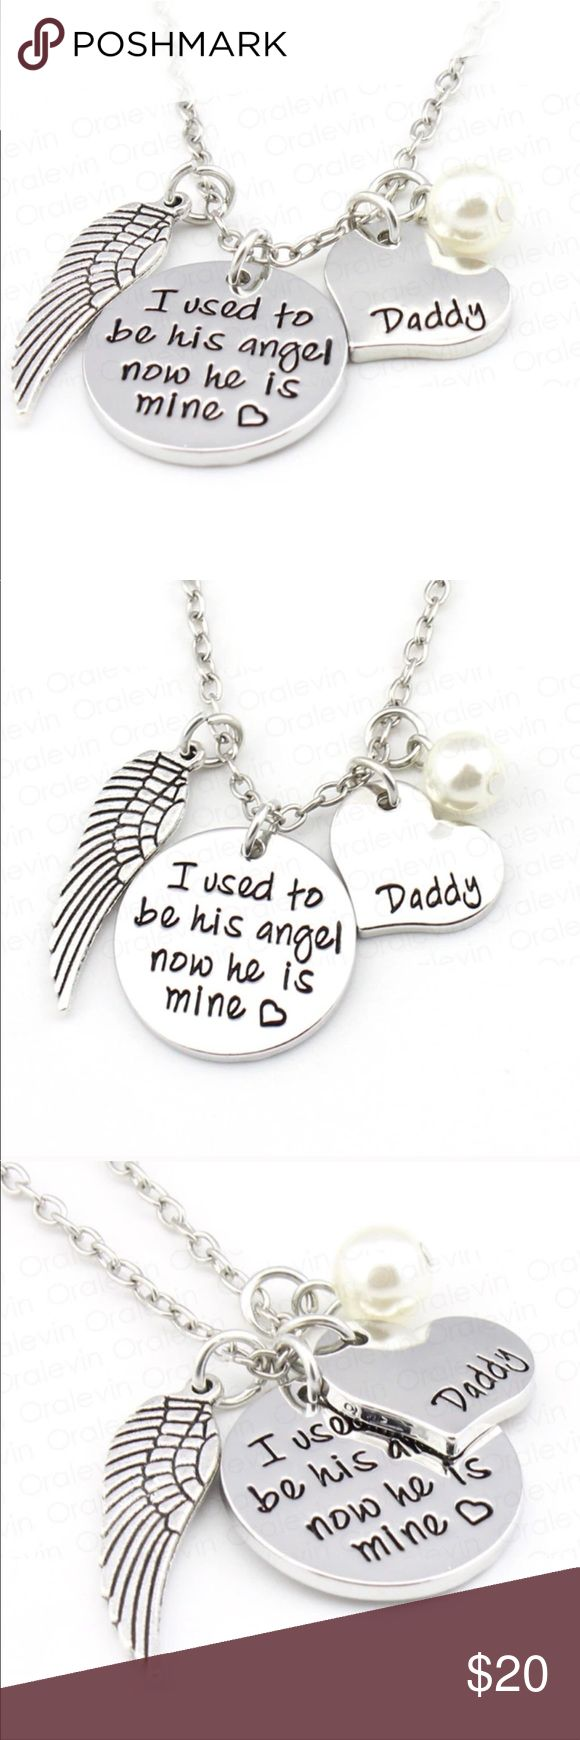 Dad Necklace See pic. Jewelry Necklaces